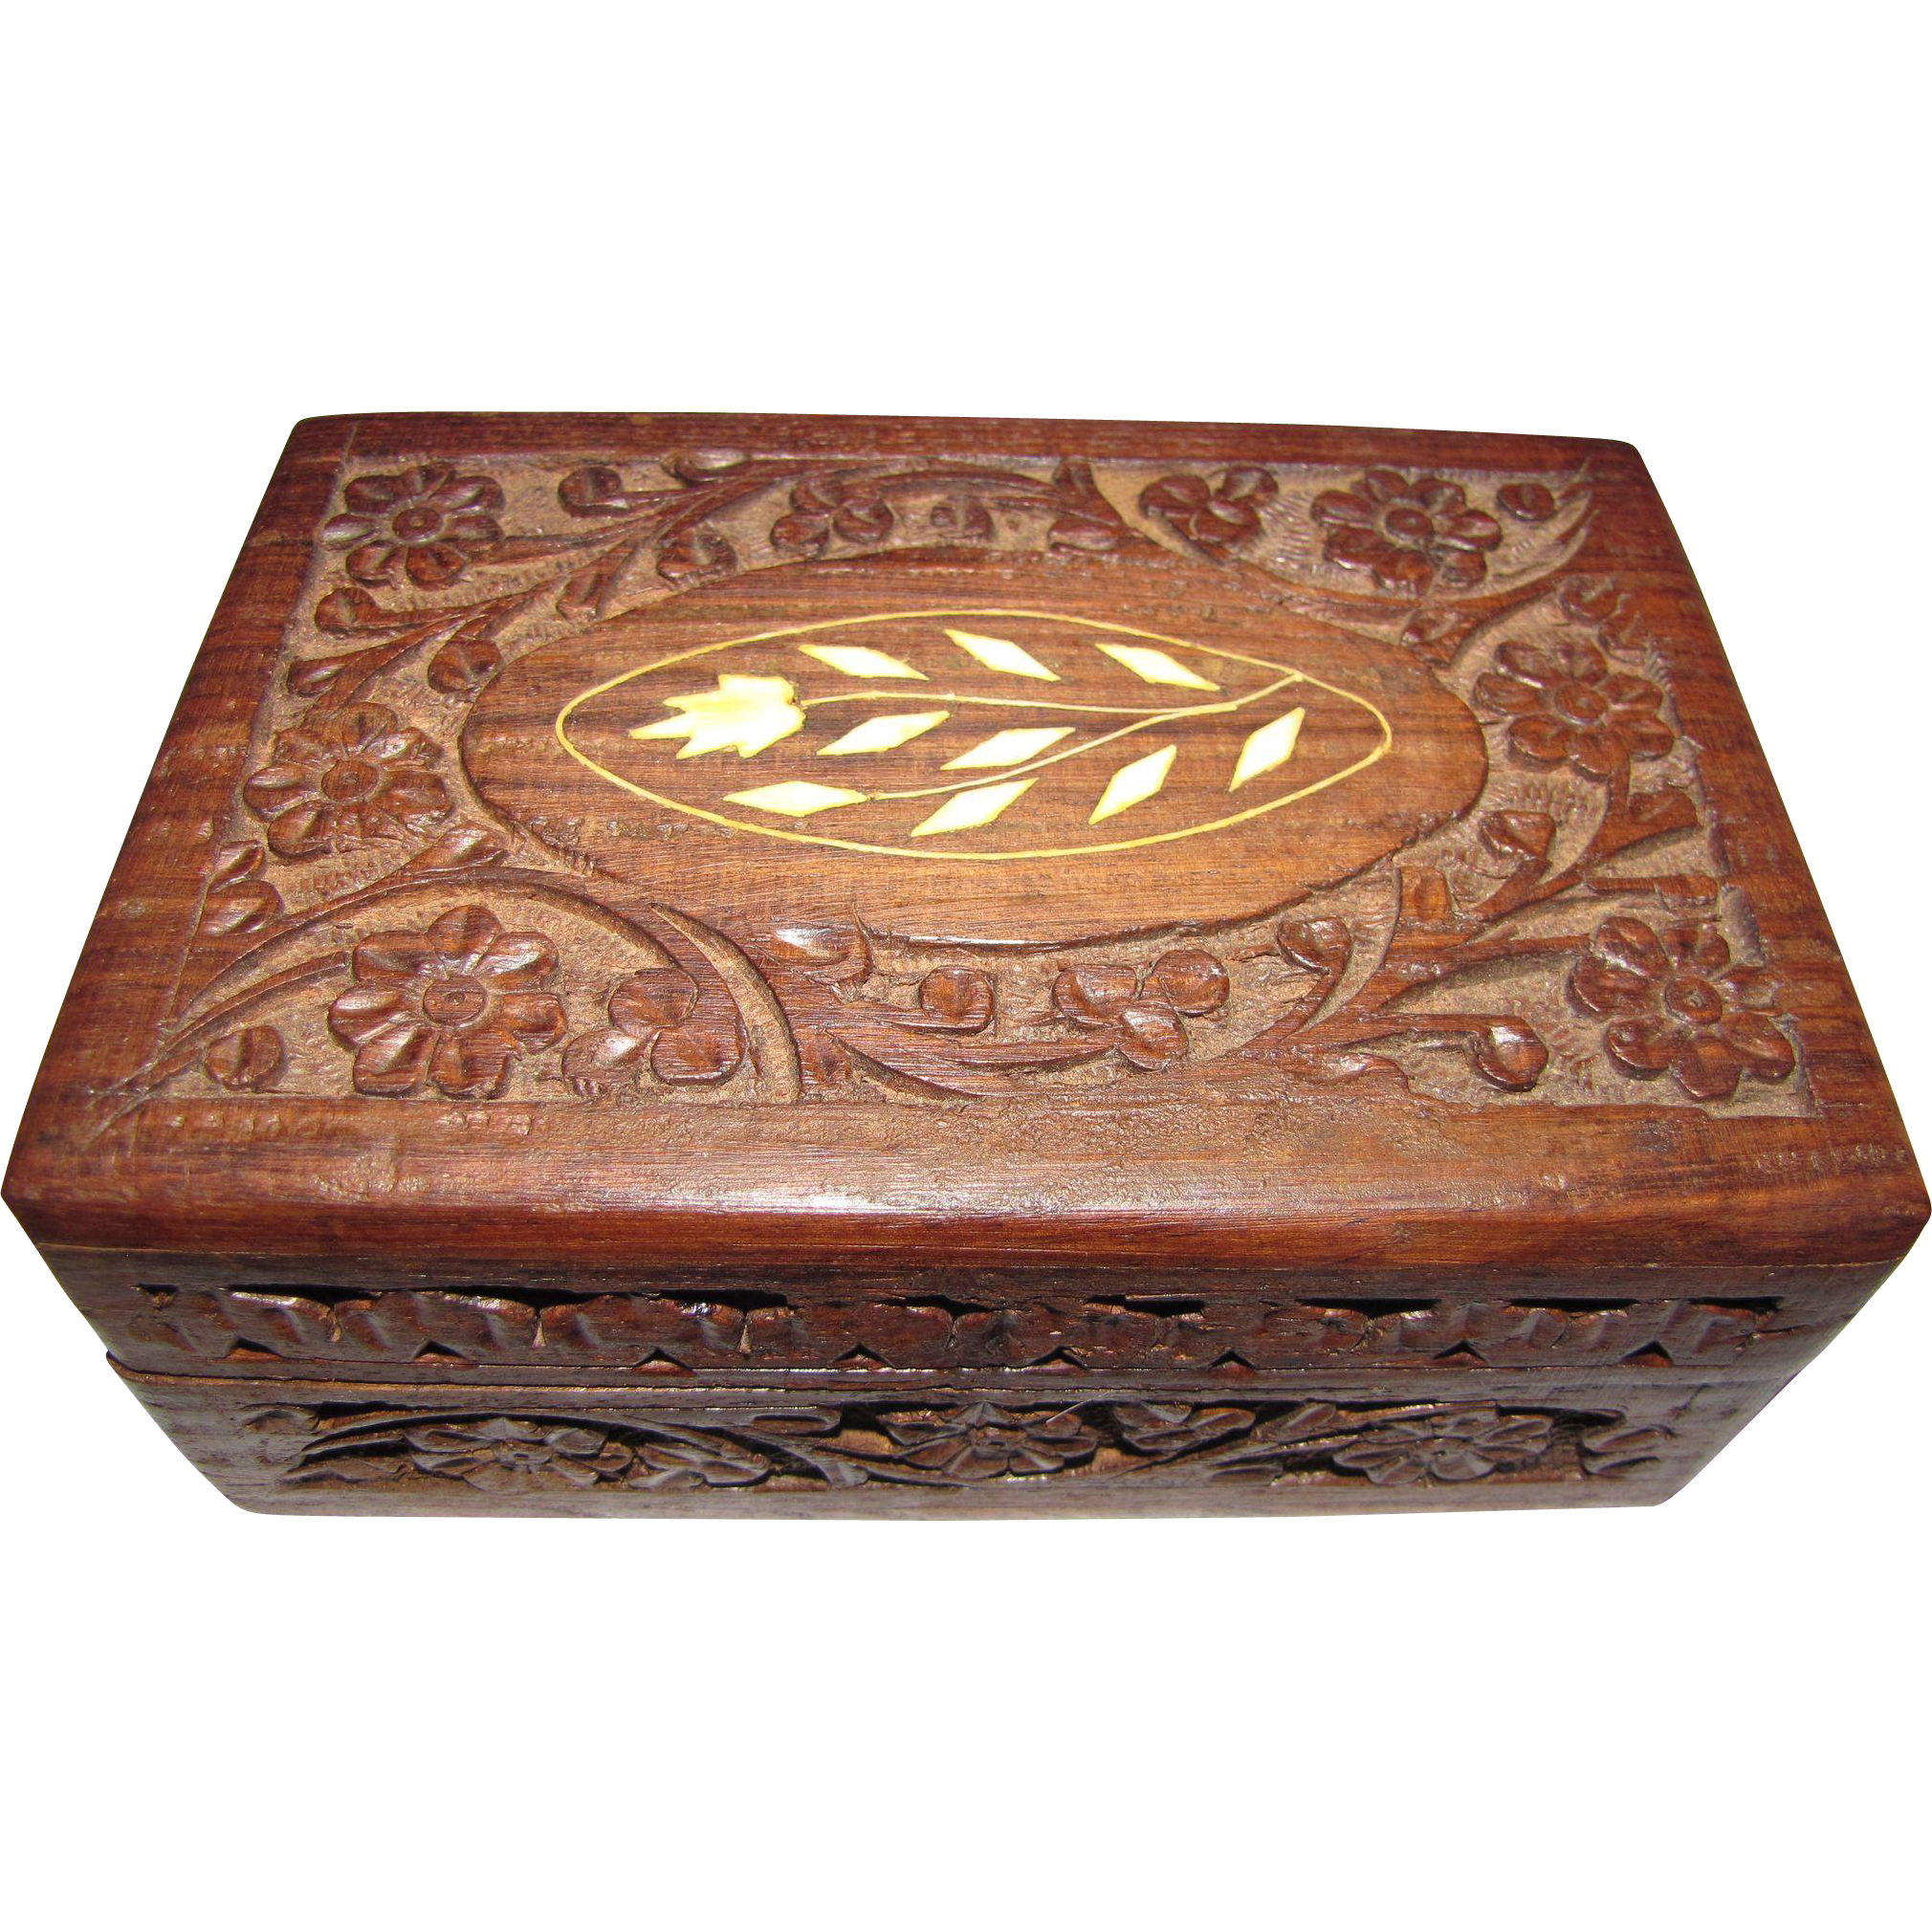 Hand Carved Indian Wooden Jewelry Box with Bone Inlay Fay Wray